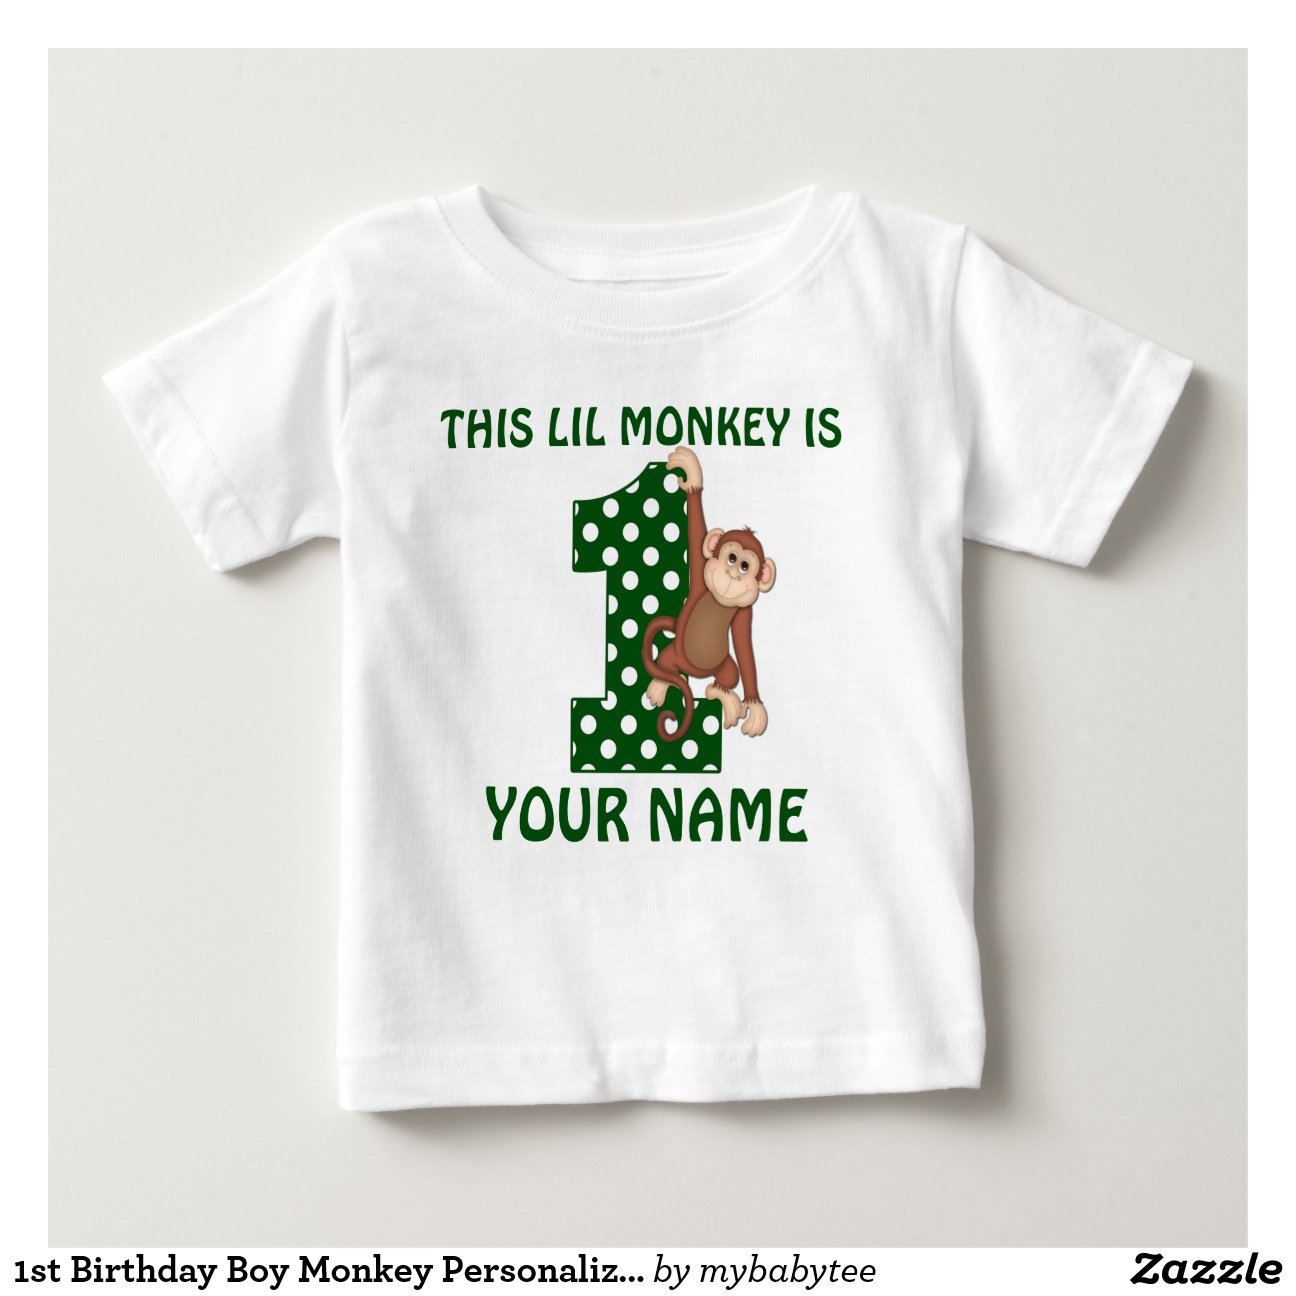 Lil monkeys personalized baby gifts 1st birthday boy monkey lil monkeys personalized baby gifts negle Gallery